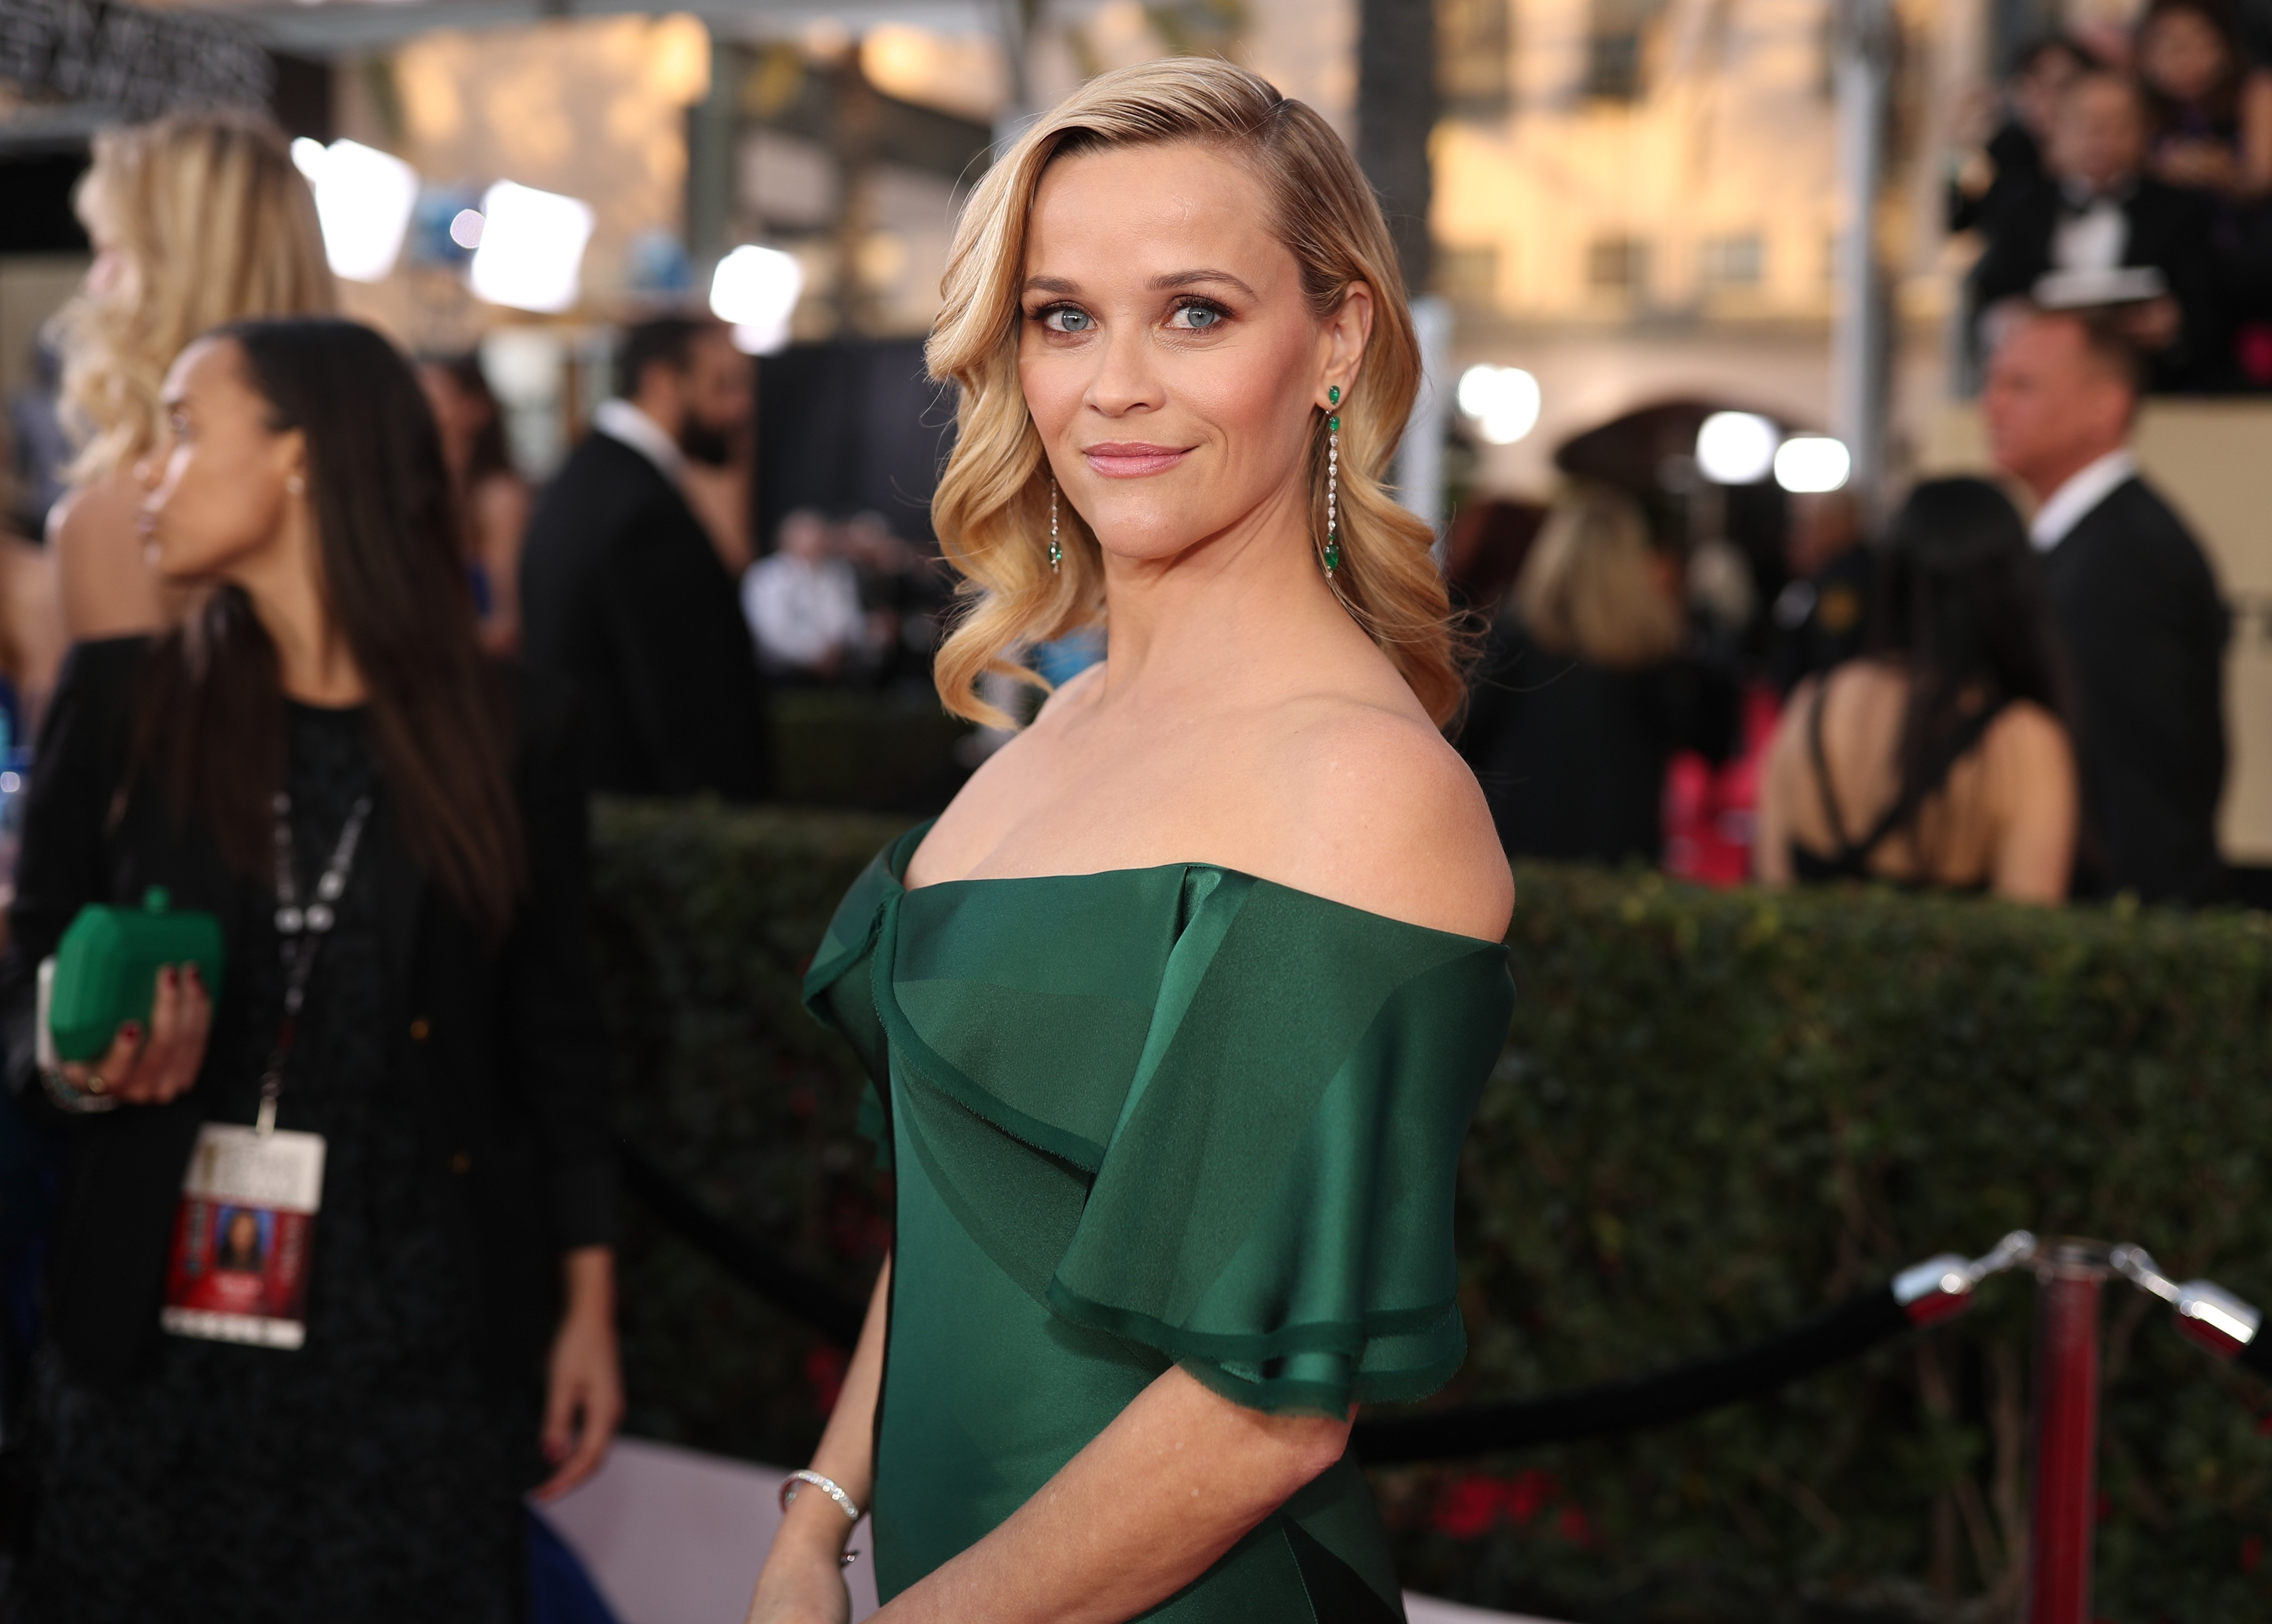 Reese Witherspoon attends the 24th Annual Screen Actors Guild Awards at The Shrine Auditorium on January 21, 2018 in Los Angeles, California. | Source: Getty Images